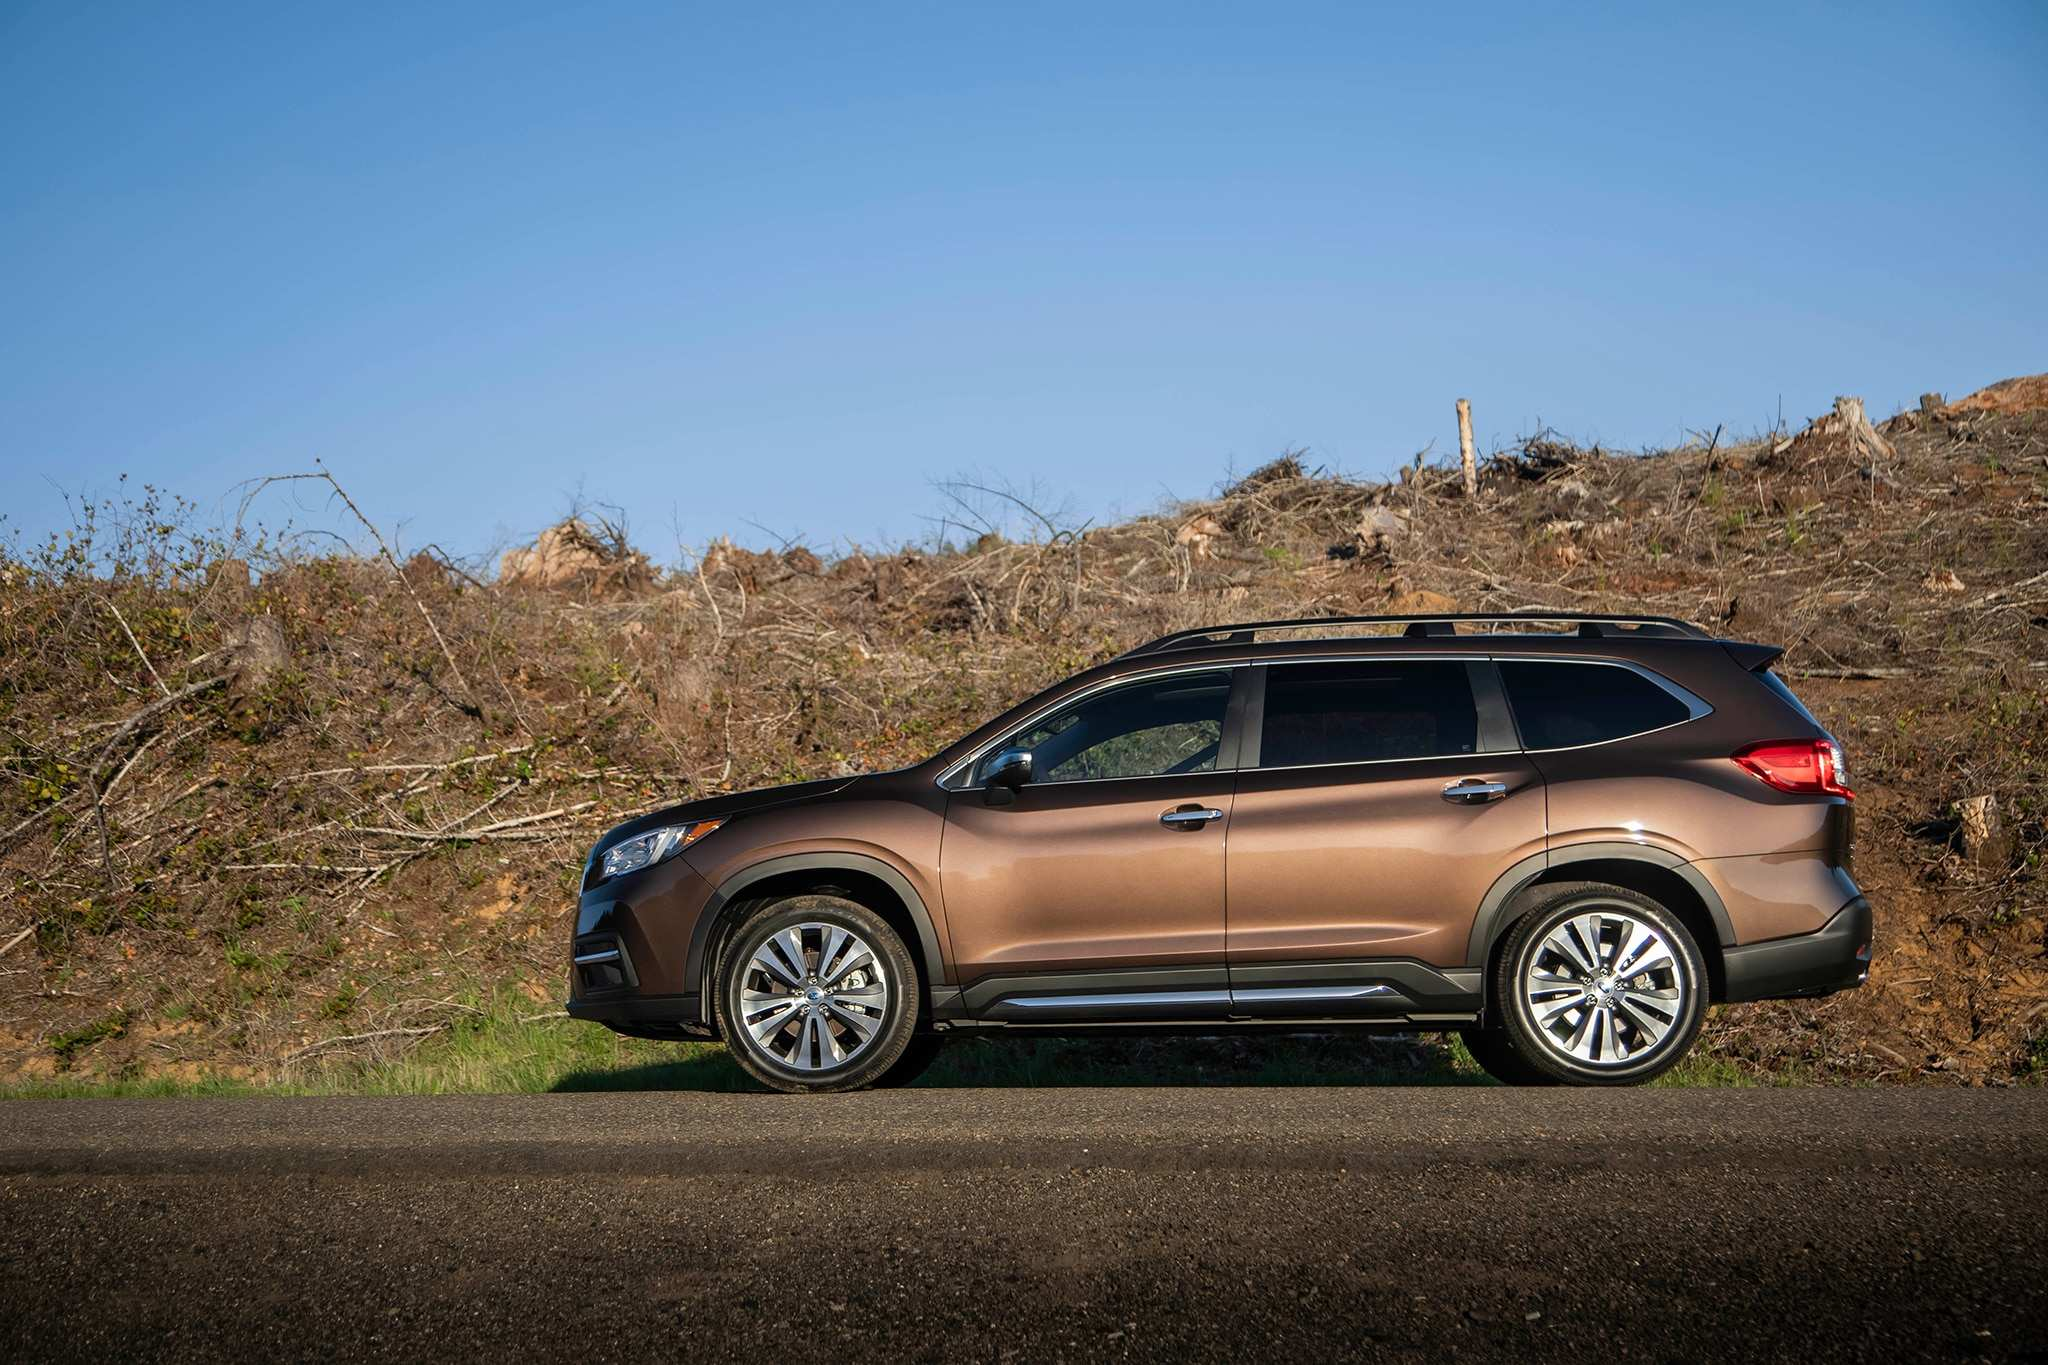 79 Gallery of 2019 Subaru Ascent 0 60 Reviews for 2019 Subaru Ascent 0 60